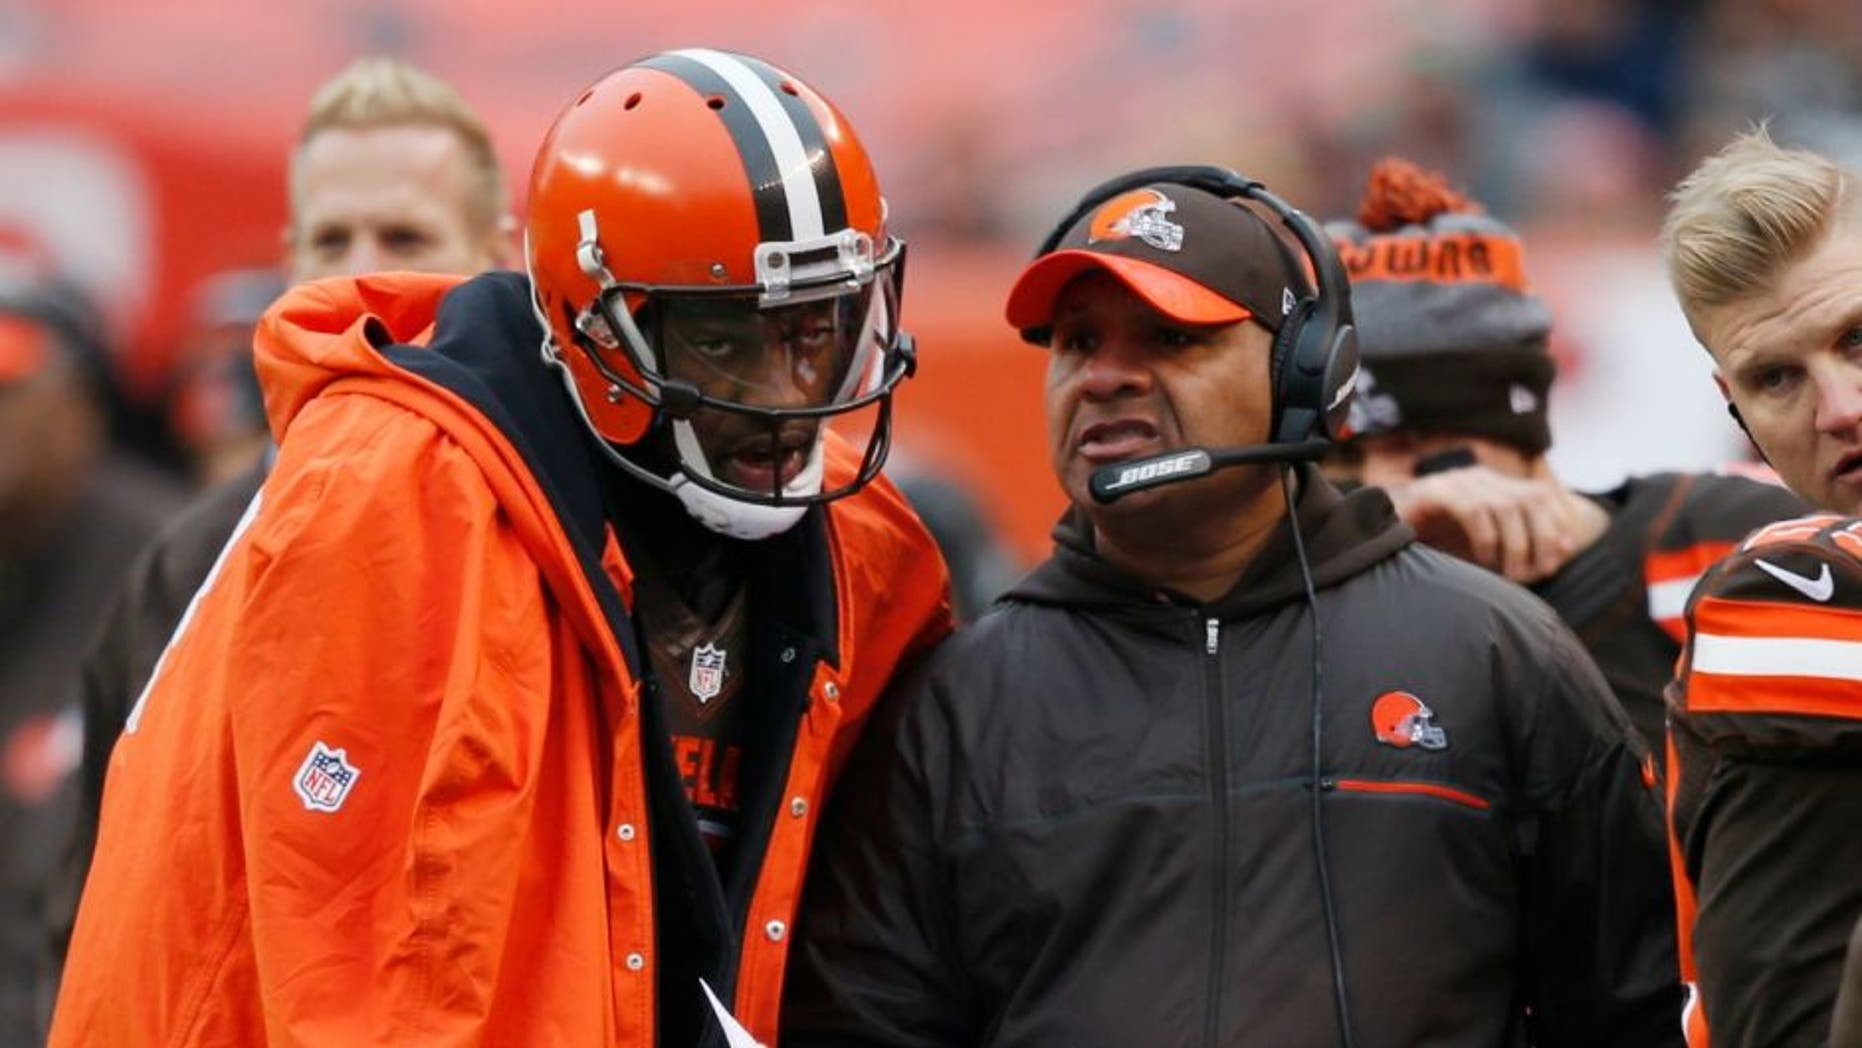 Cleveland Browns head coach Hue Jackson, right, talks with quarterback Robert Griffin III in the first half of an NFL football game against the San Diego Chargers, Saturday, Dec. 24, 2016, in Cleveland. (AP Photo/Ron Schwane)